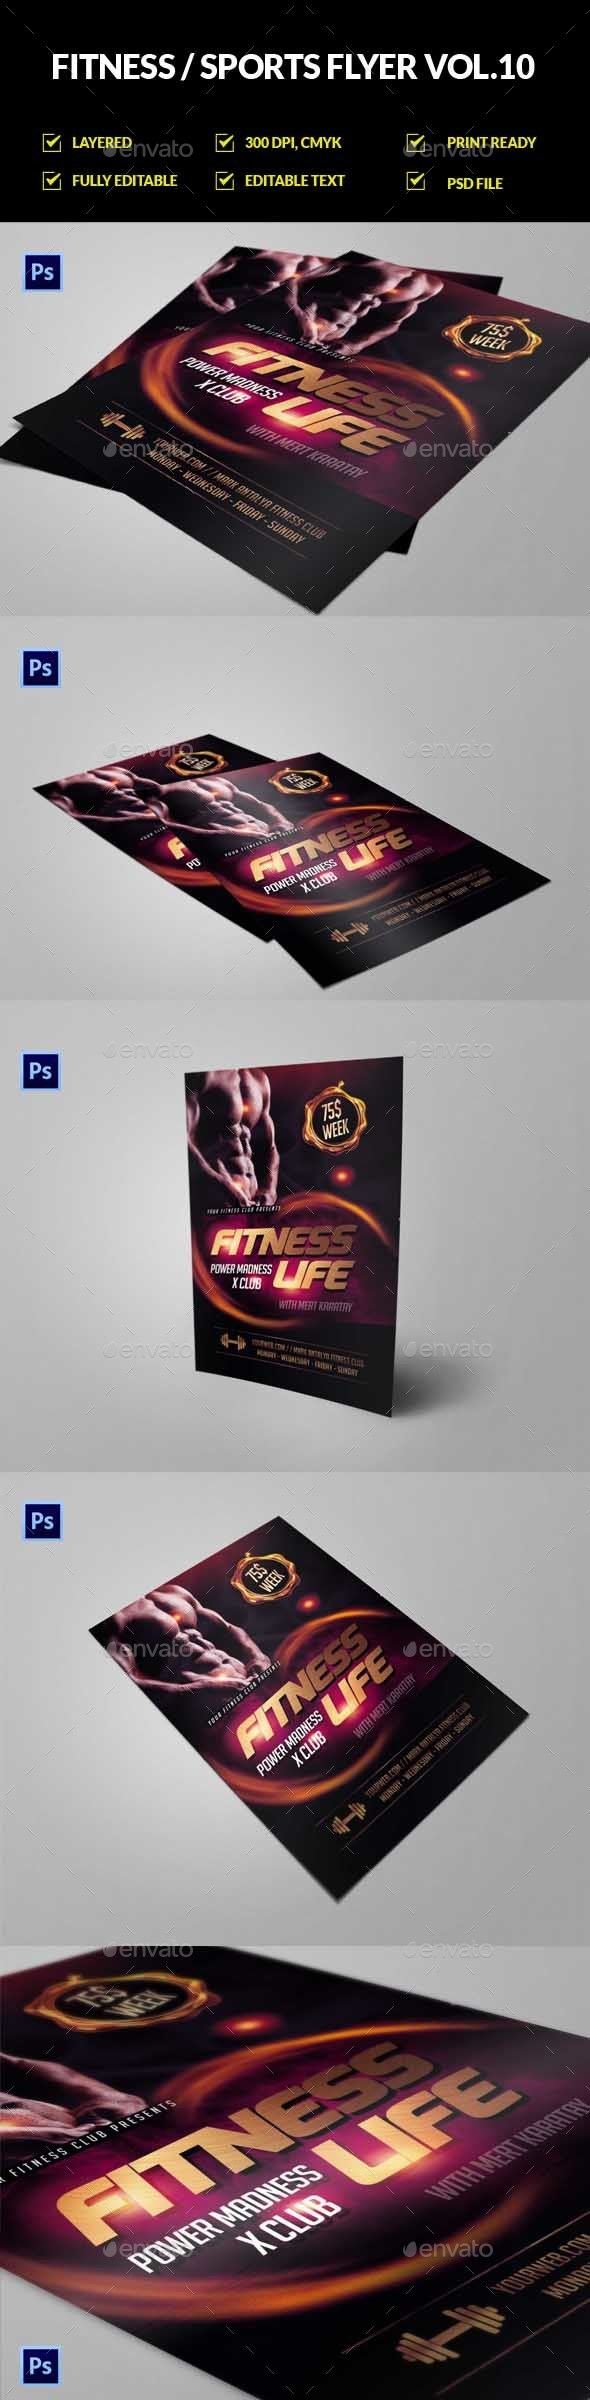 Fitness Flyer Vol.10 - Sports Events